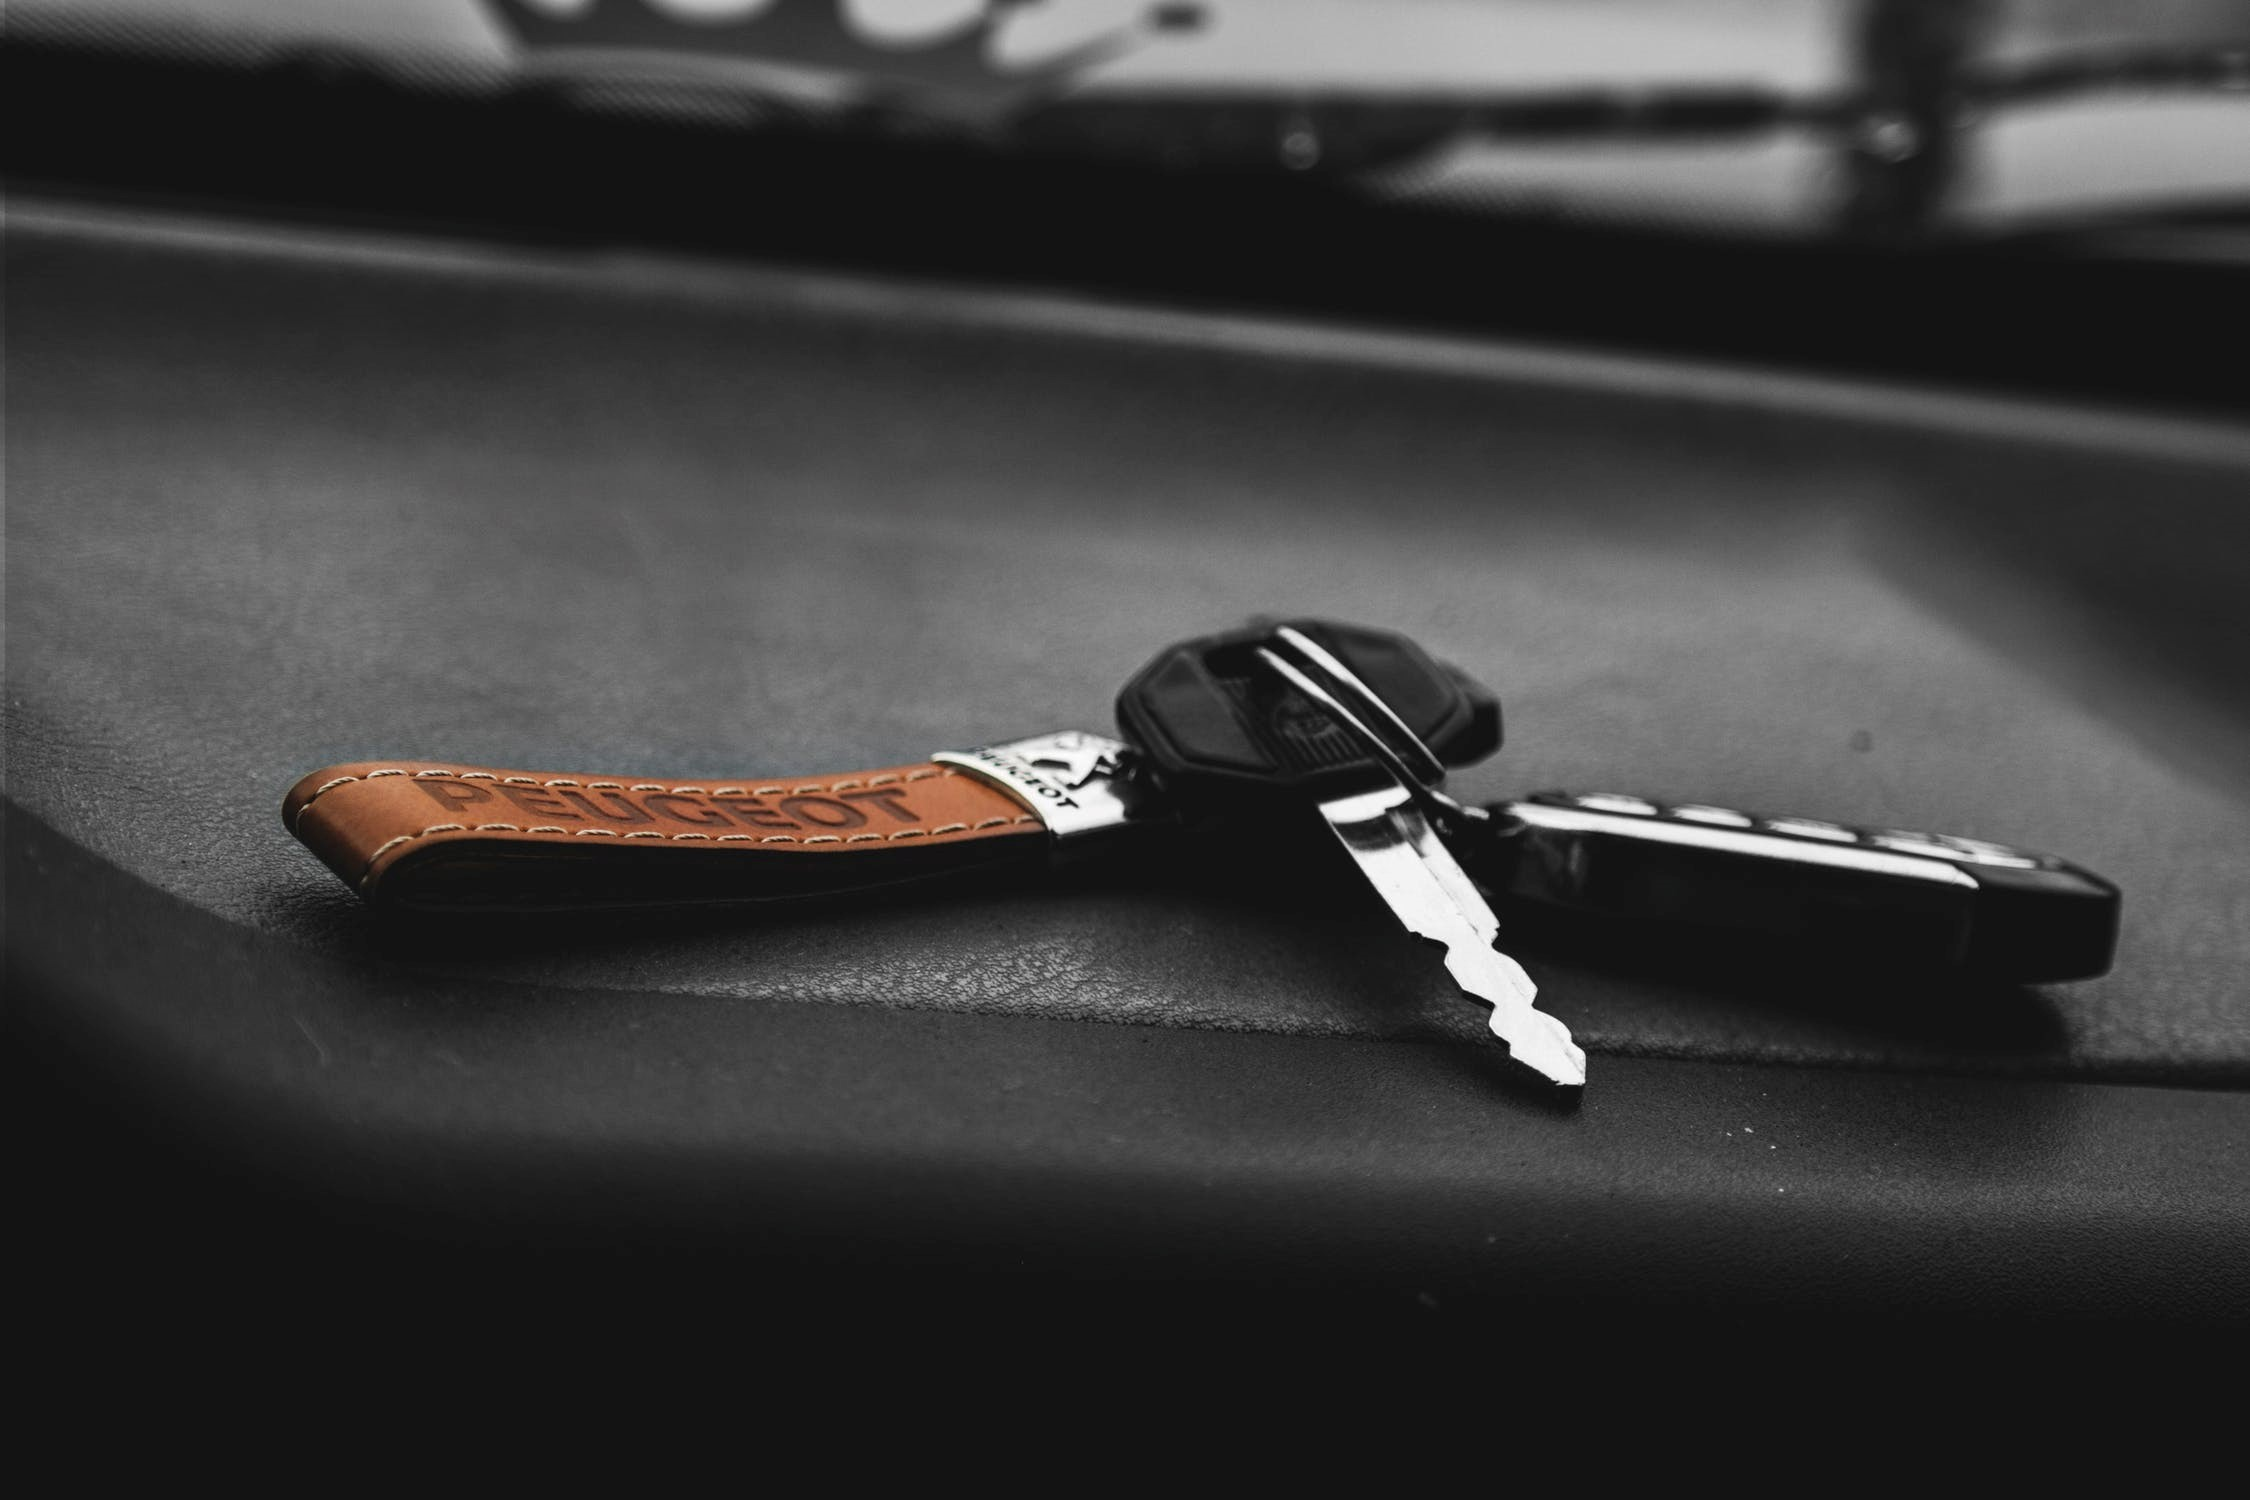 Tips to prevent misplacing your keys